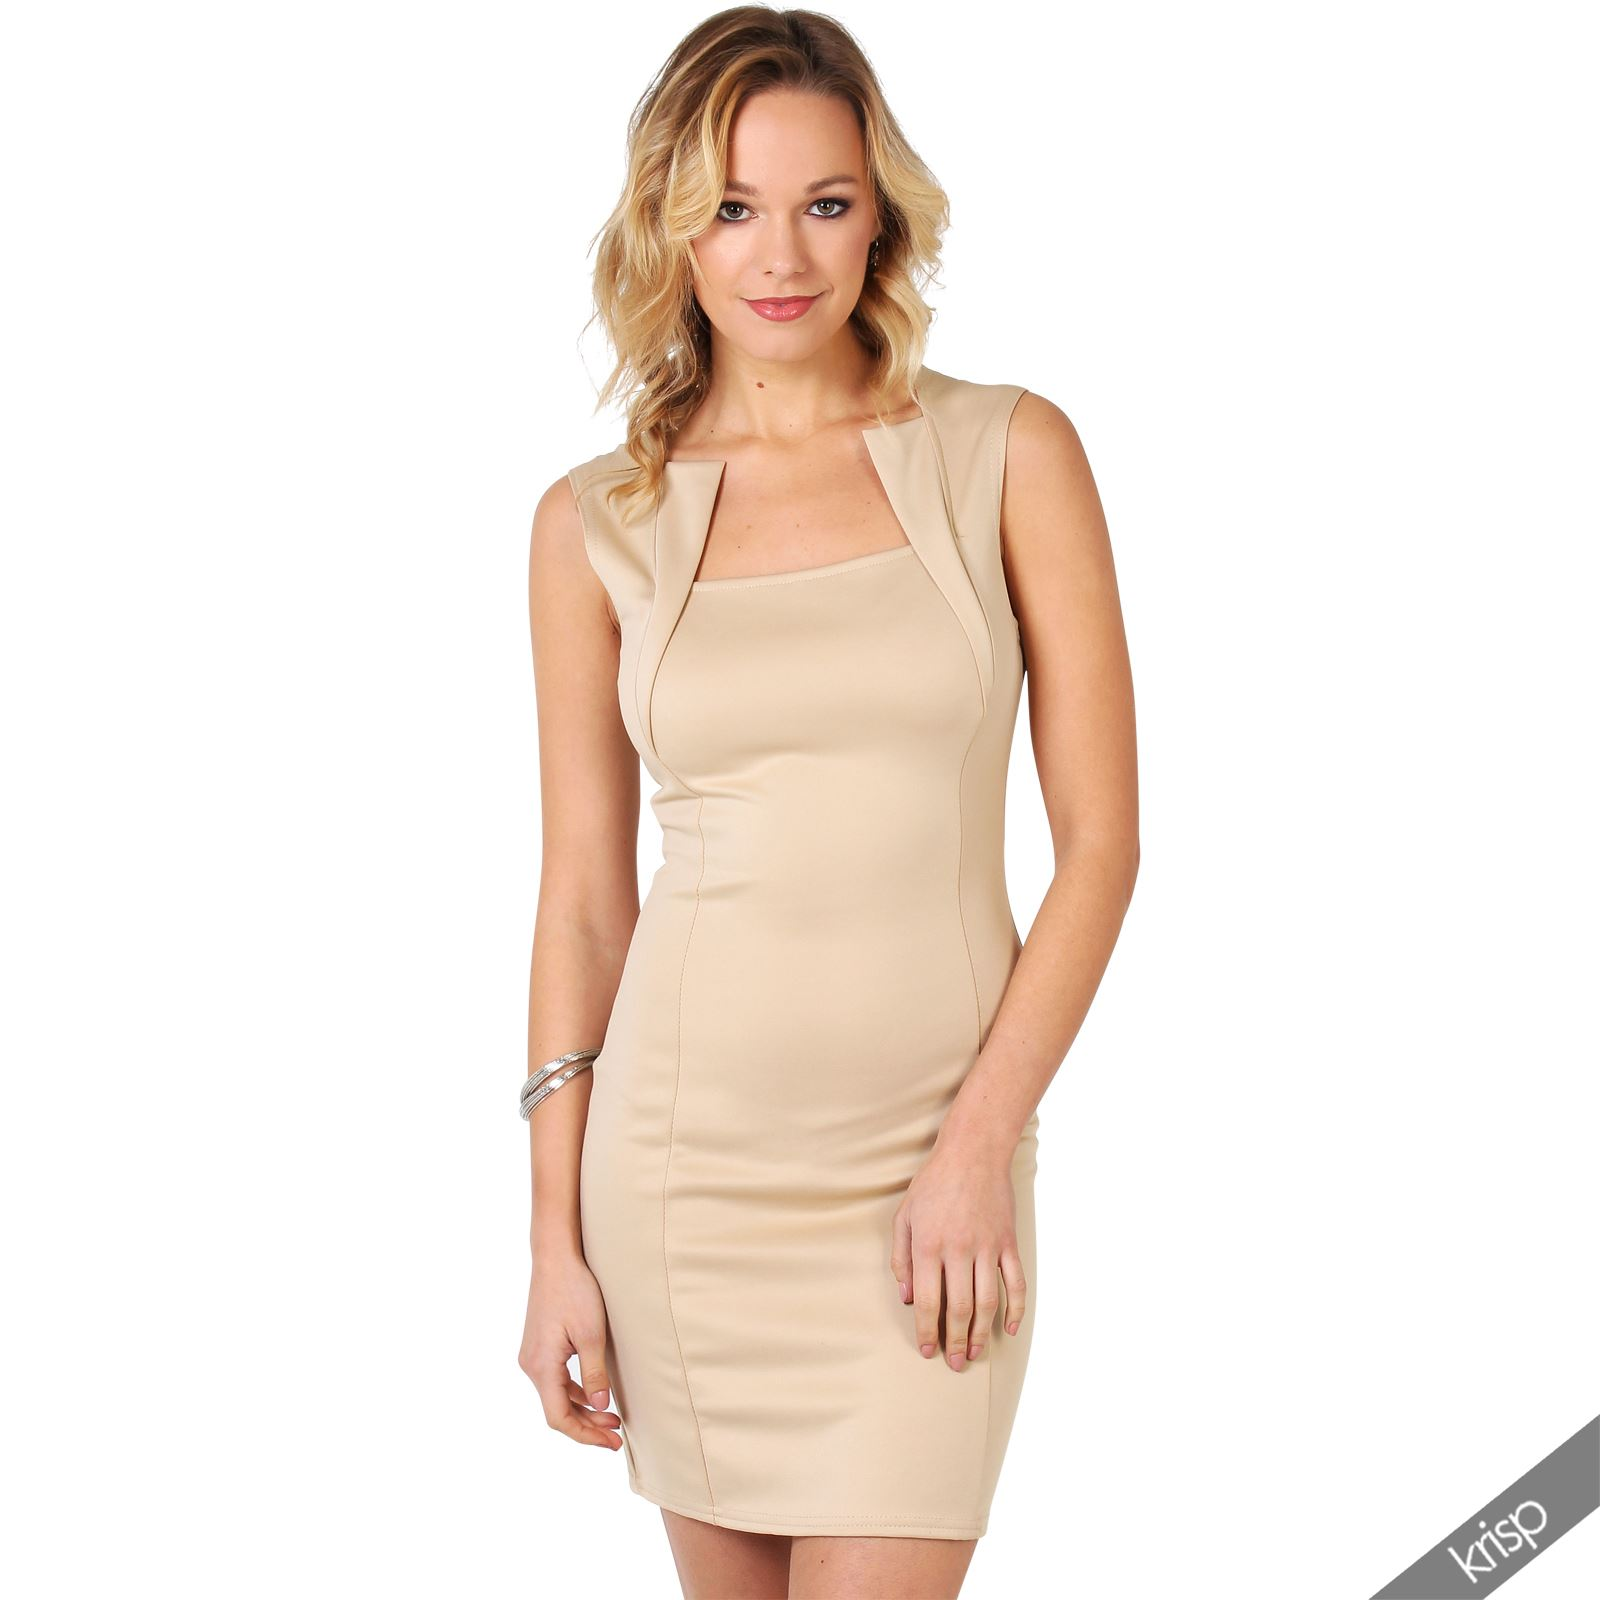 Ladies-Fashion-Bodycon-Dress-Sleeveless-Backless-Party-Fitted-Cocktail-Pencil thumbnail 25